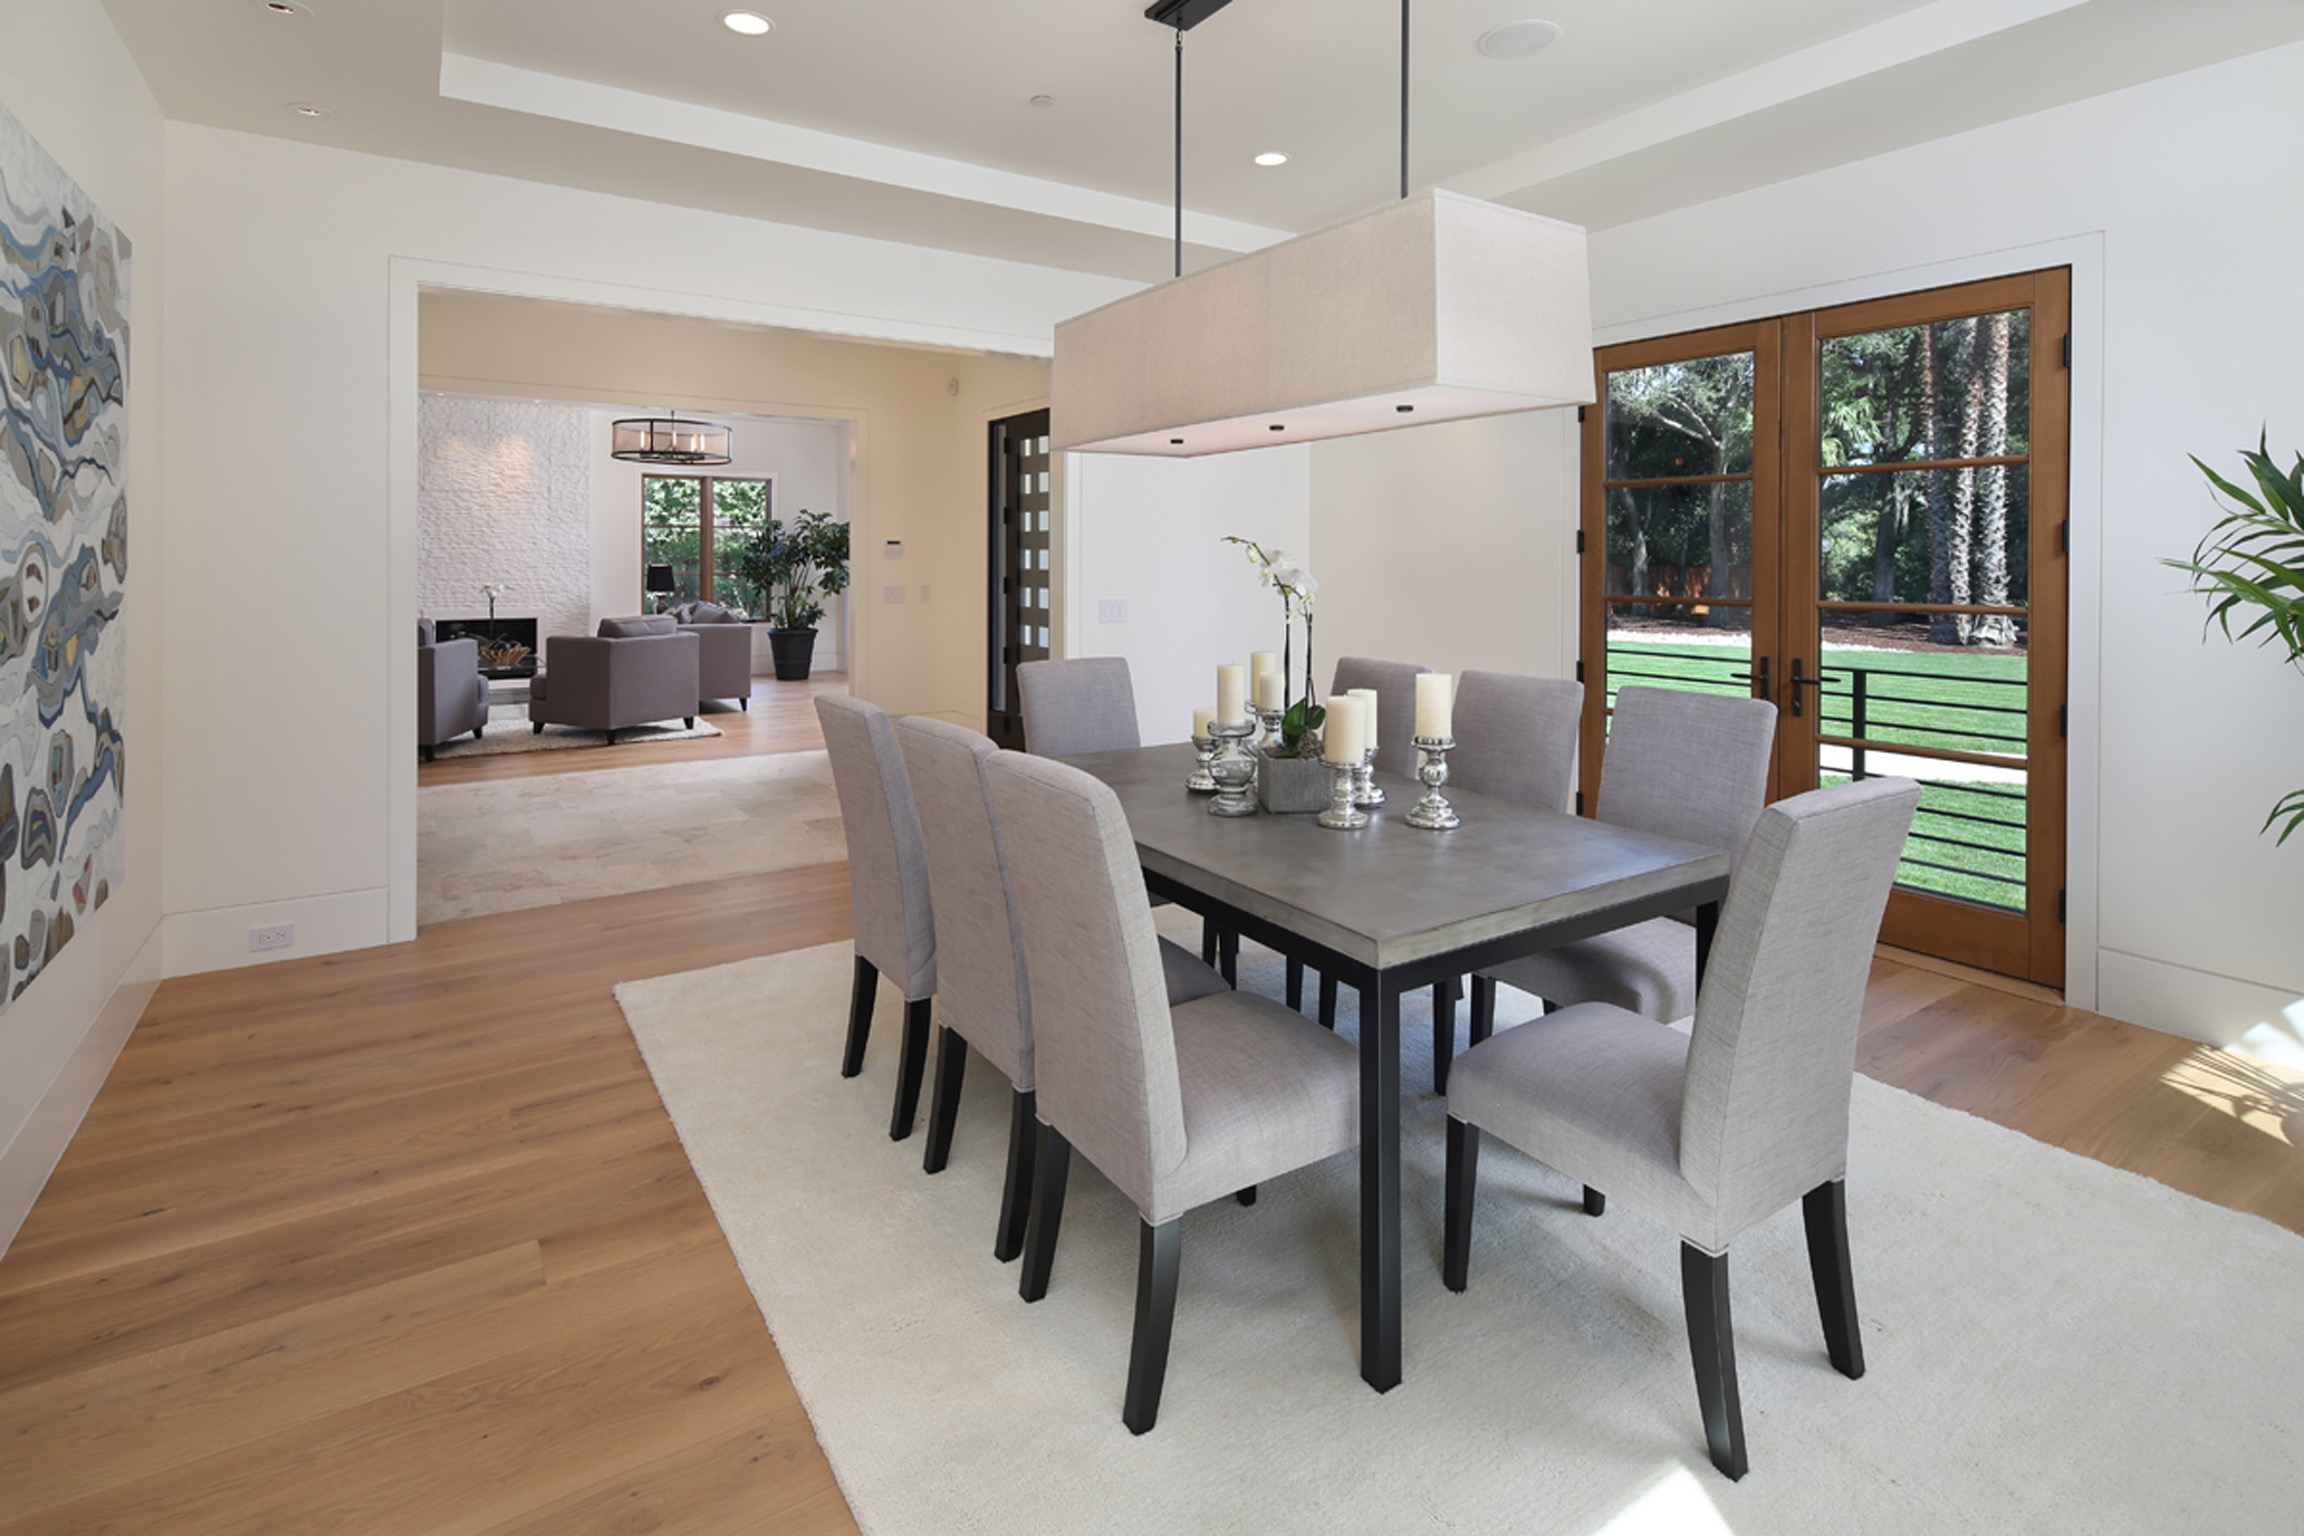 Modern Minimalistic Dining Room With Soft Gray Chairs, Black Dining Table, And Rectangular Chandelier Hangs Above (Image 22 of 30)